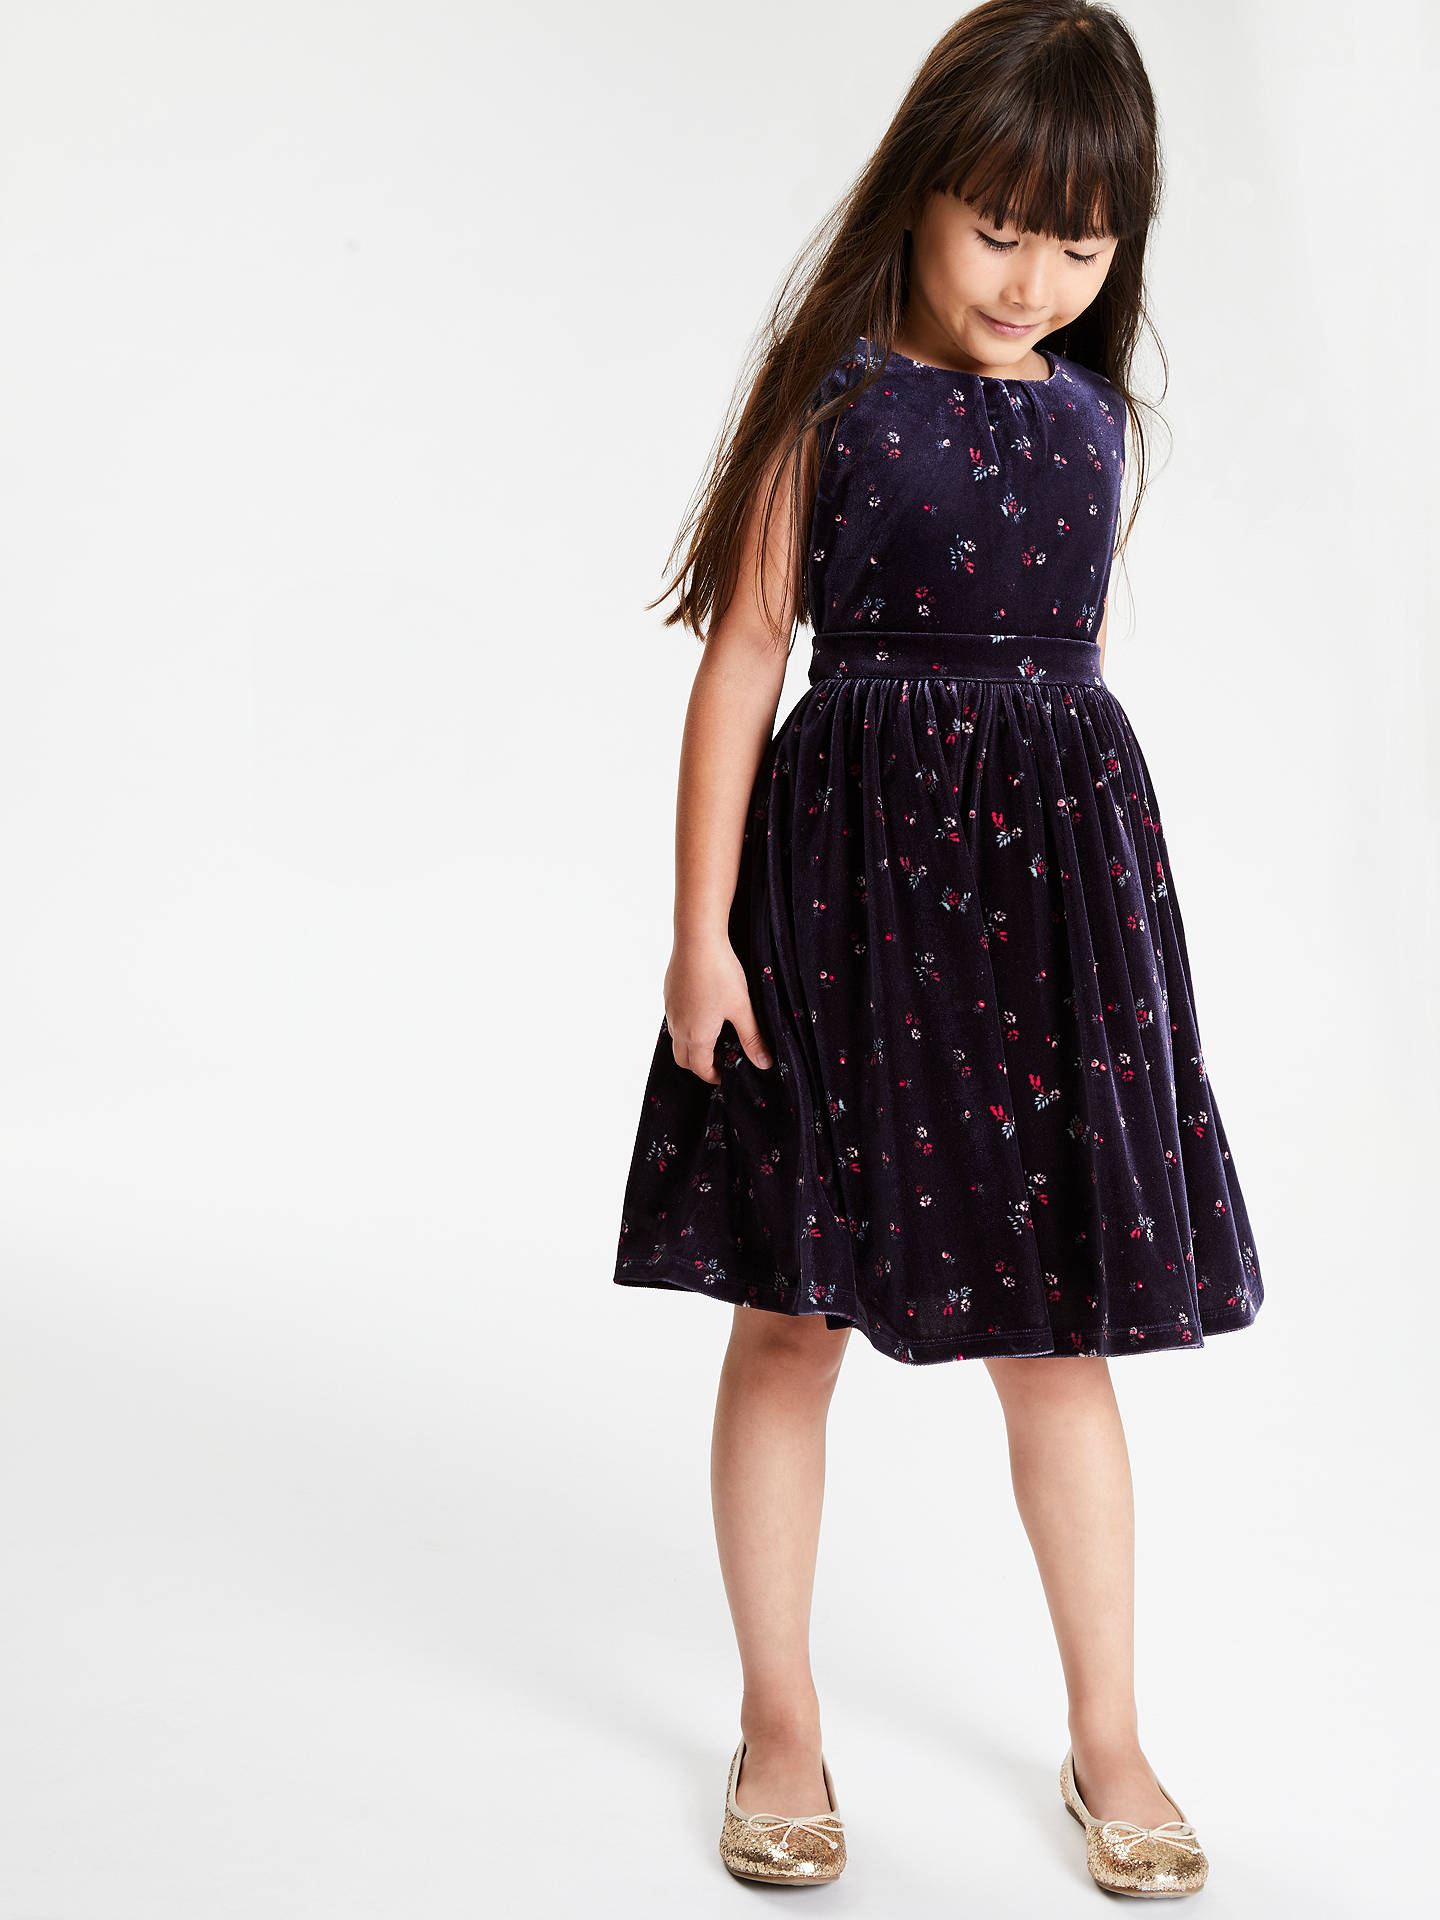 BuyJohn Lewis & Partners Heirloom Collection Girls' Velvet Party Dress, Navy, 6 years Online at johnlewis.com